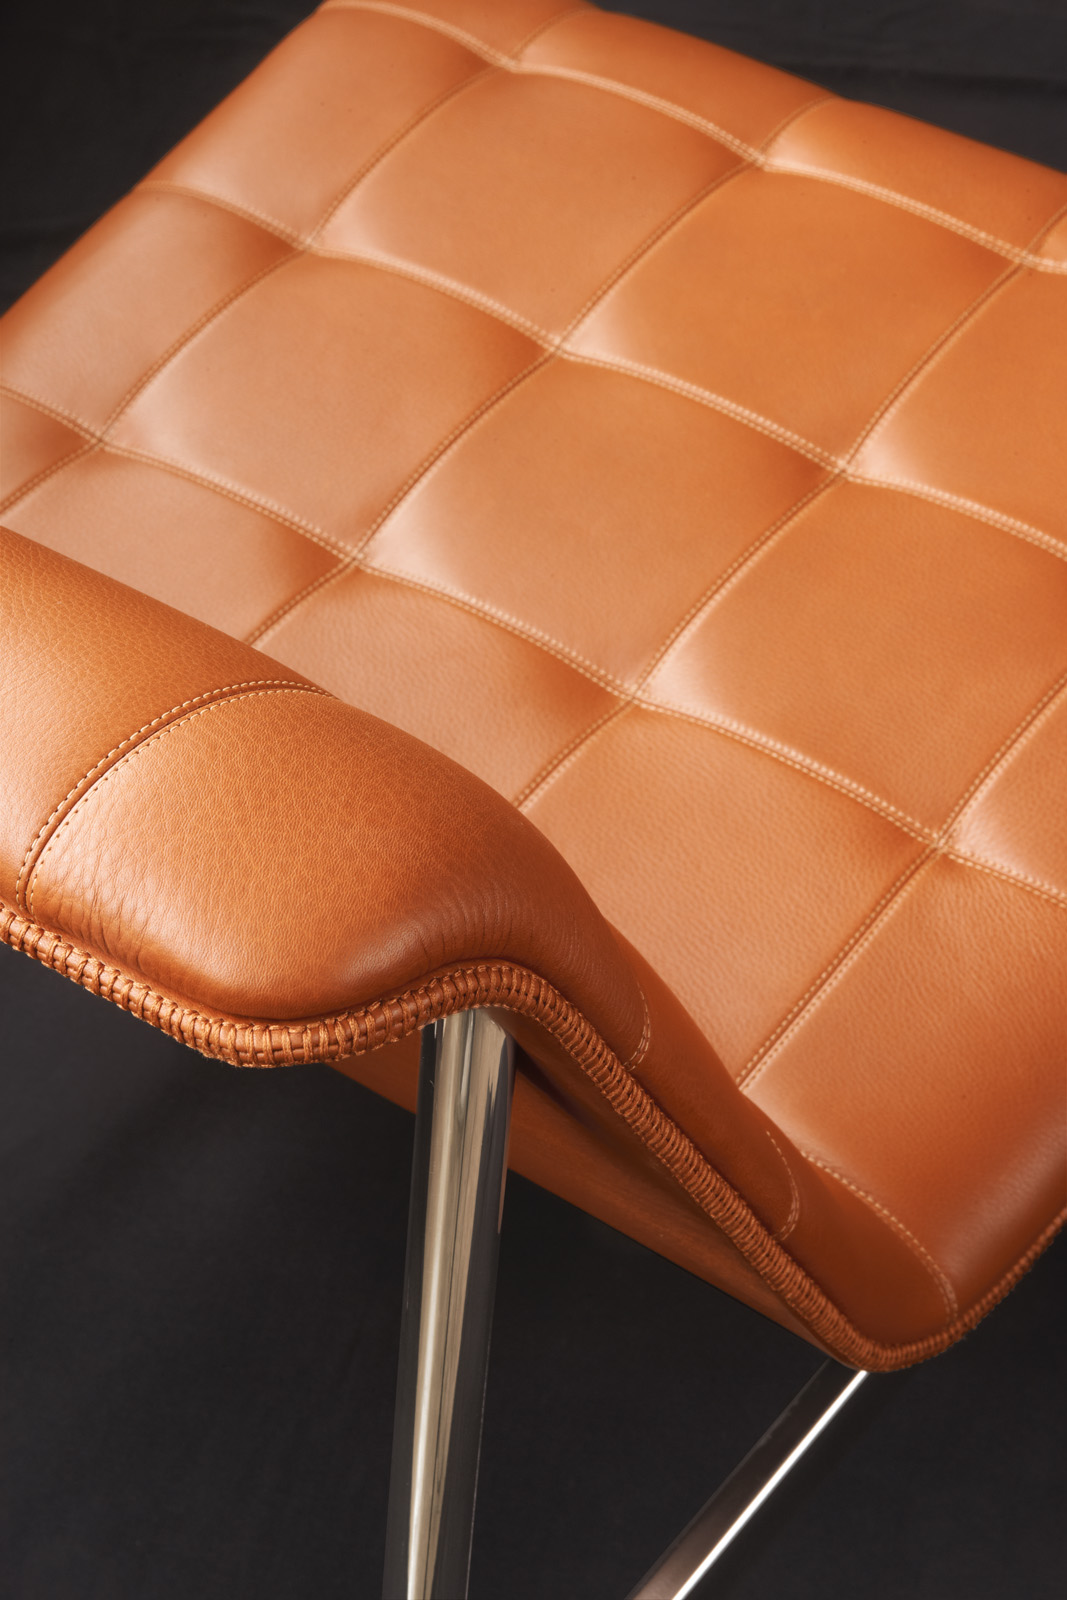 Brown leather chair by Charles Pollock